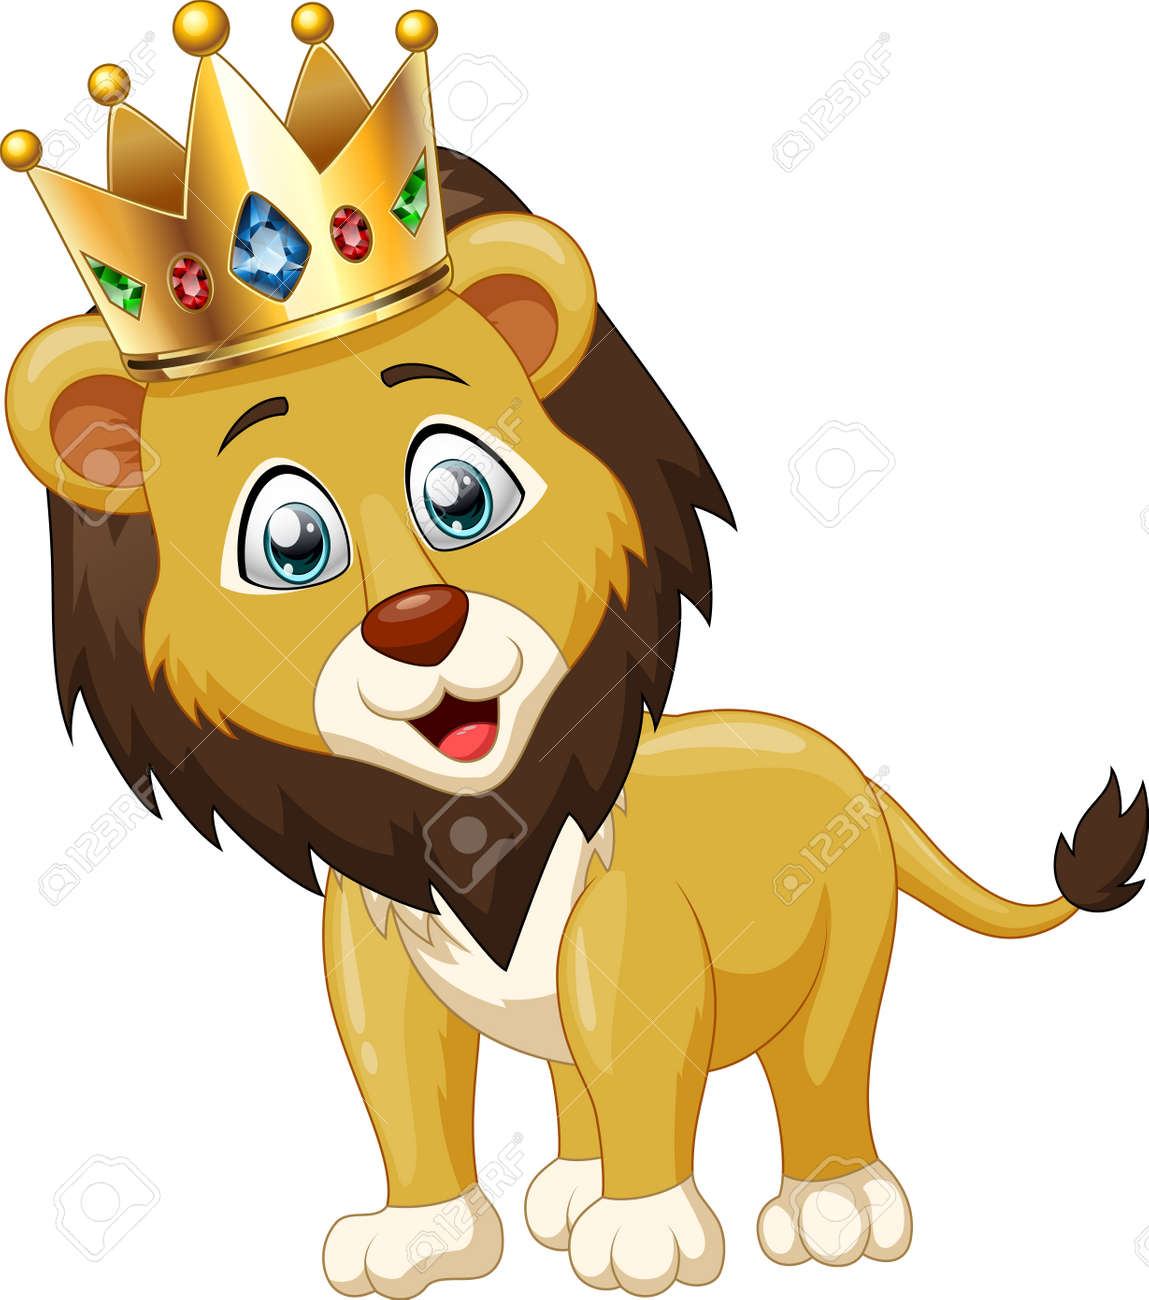 Pictures of lion king cartoon